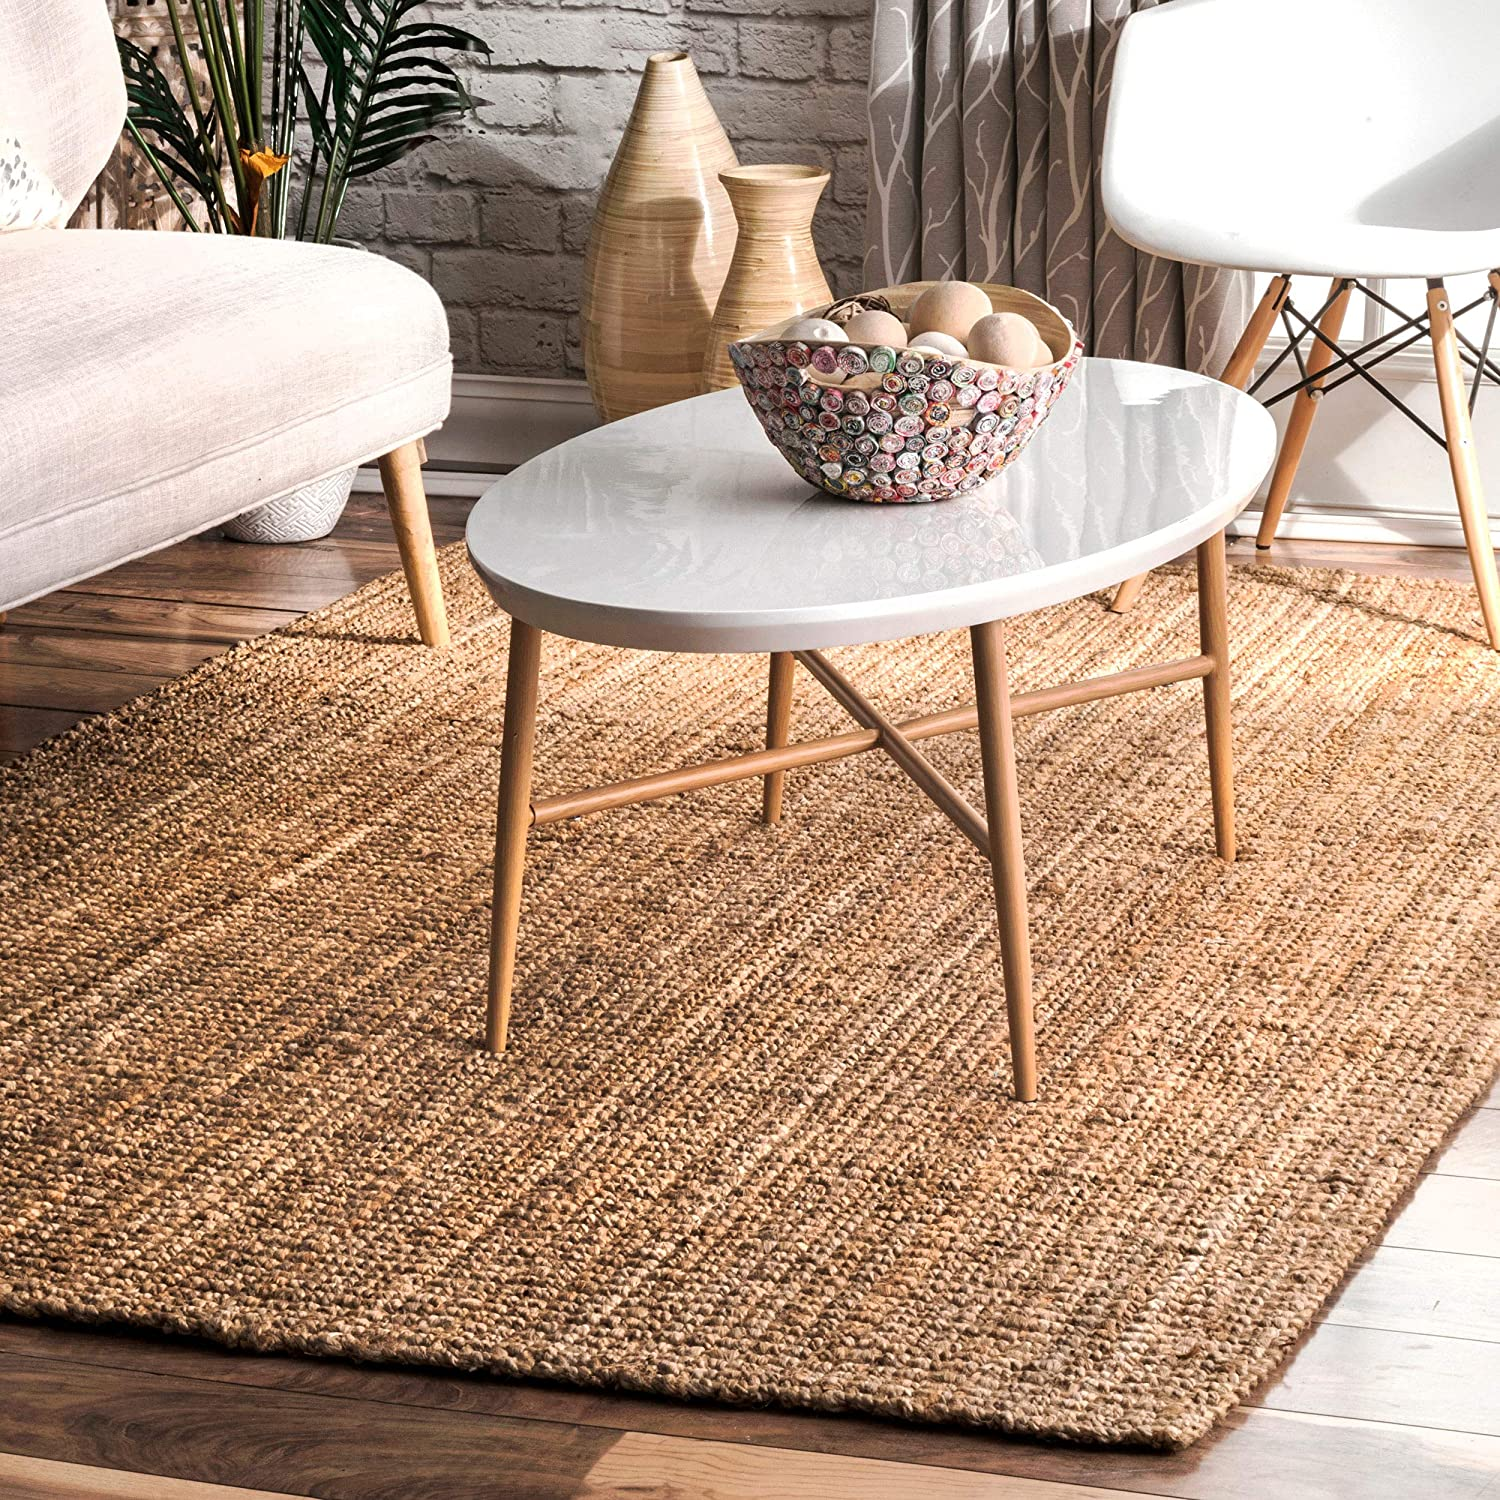 NuLOOM Handwoven Solid Ashli Solid Jute Runner Rug, 2' 6  x 8', Natural